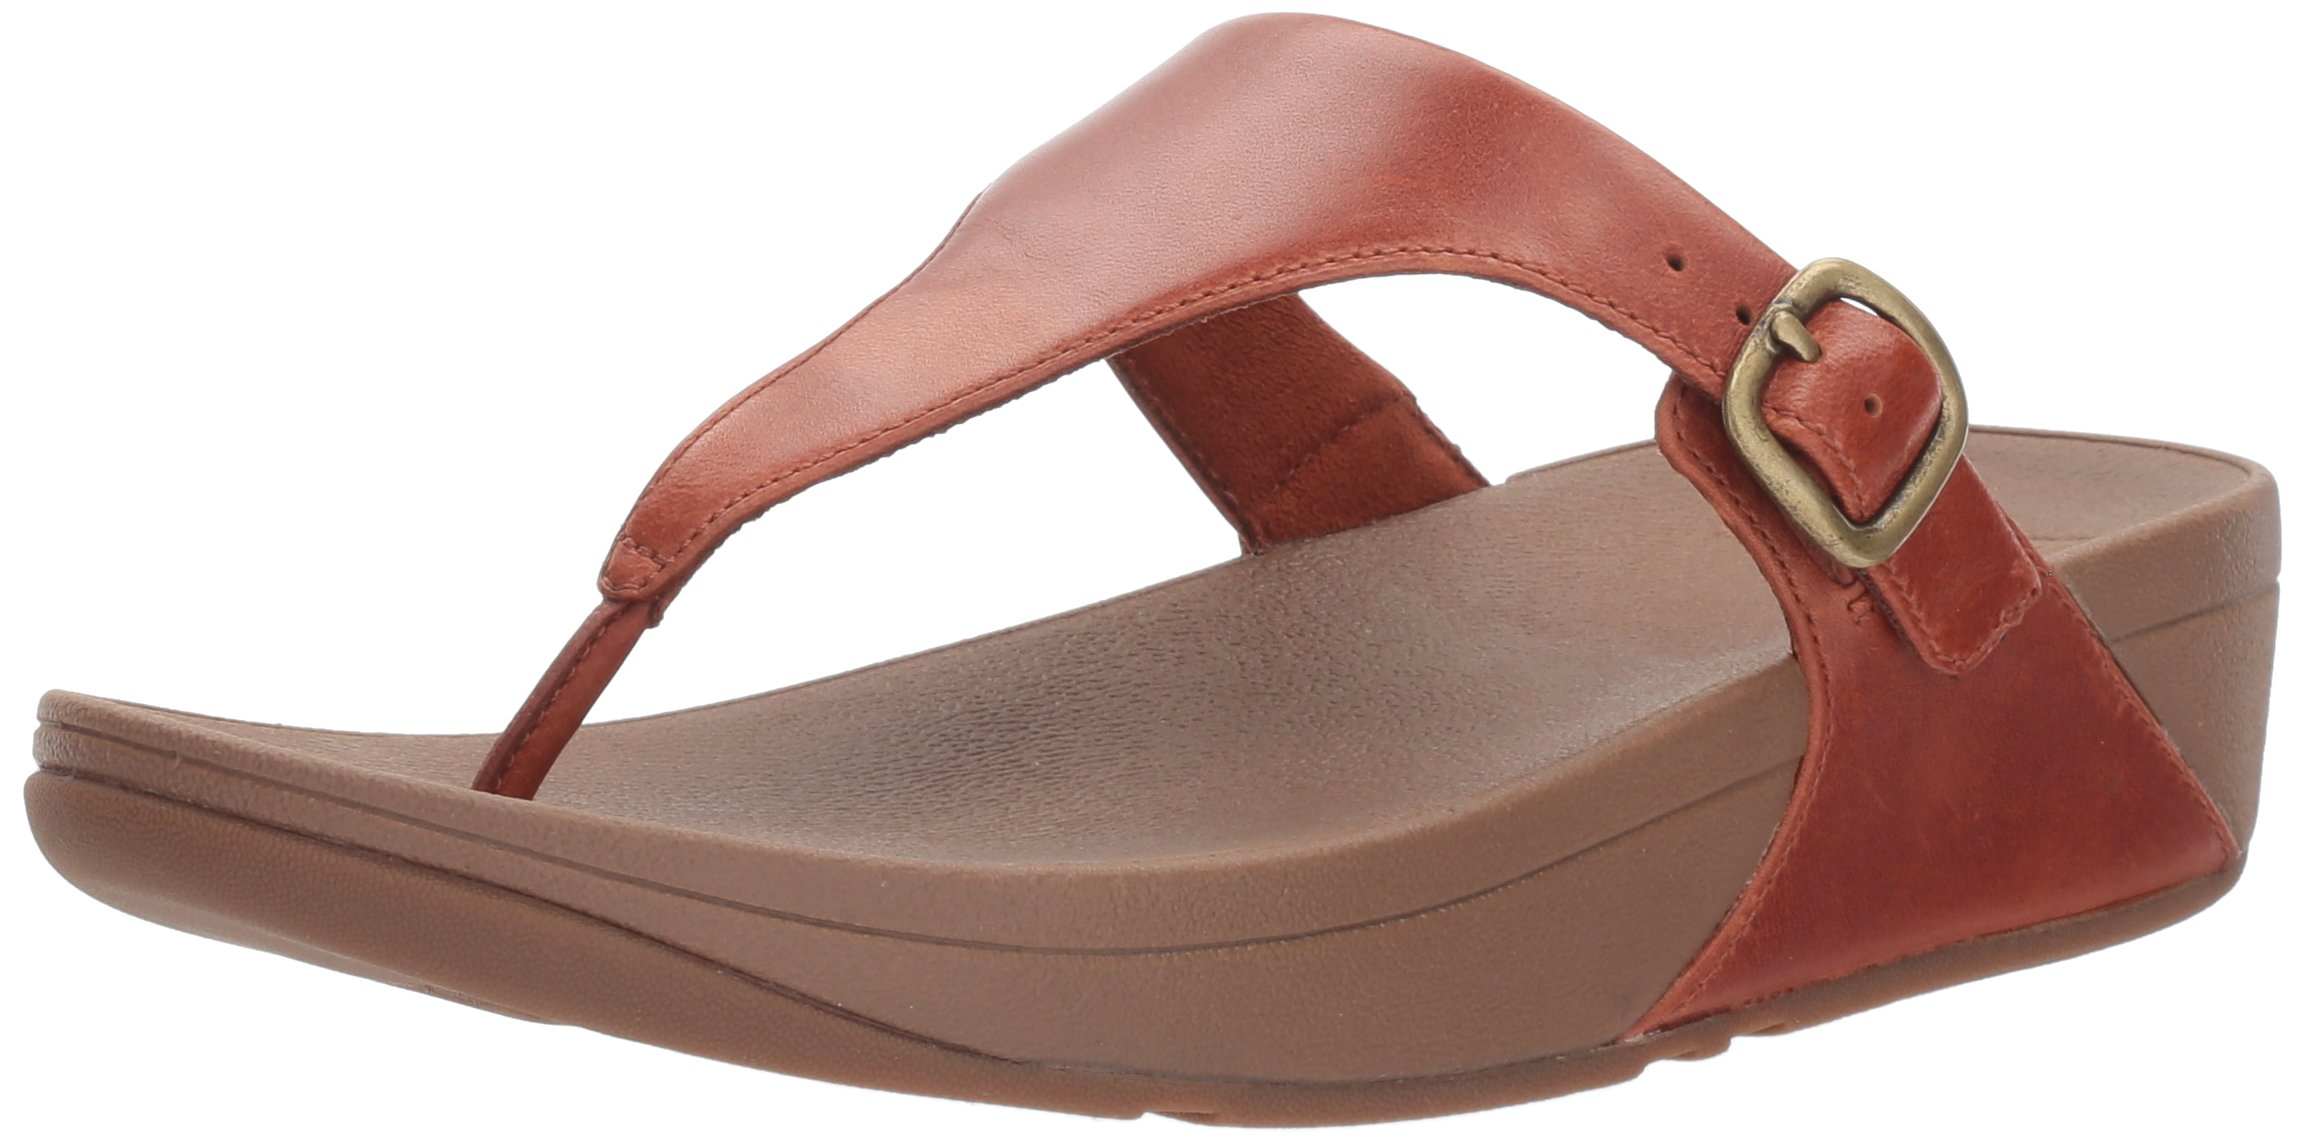 FitFlop Women's The Skinny Leather Toe-Thong Sandal, Dark Tan, 10 M US